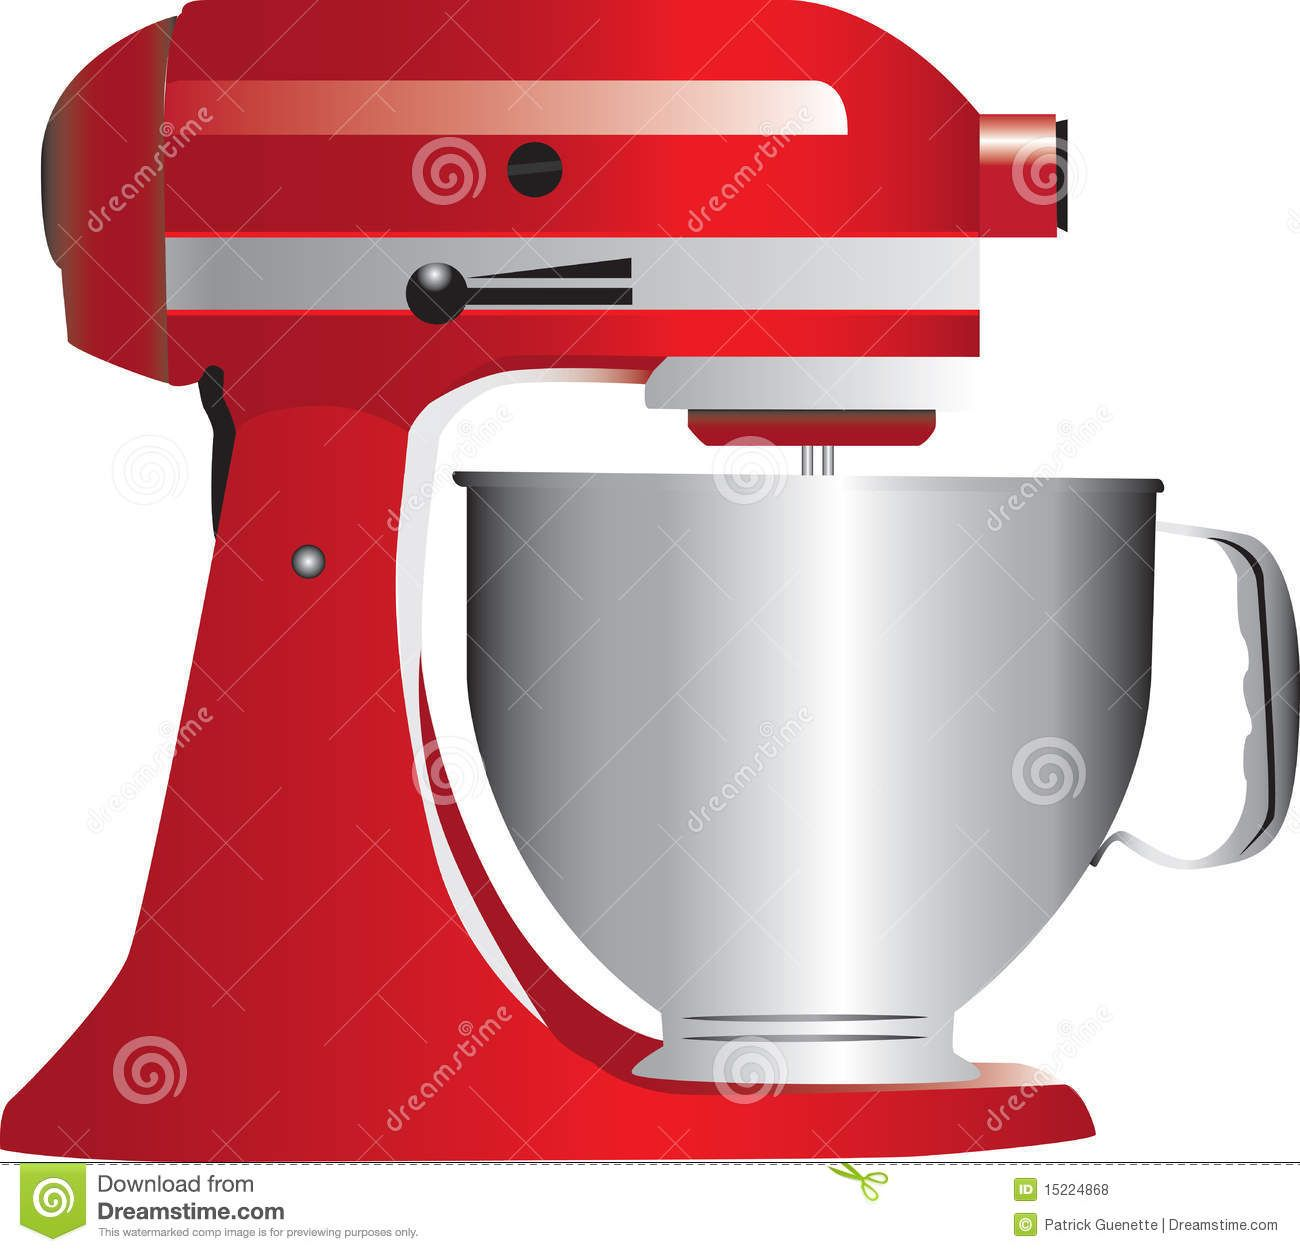 Gallery For > KitchenAid Mixer Clipart | Kitchen Aid | Kitchen aid on coffee grinder clip art, lacrosse clip art, dj mixer clip art, kitchenaid clipart, football receiver silhouette clip art, kettle clip art, electric range clip art, vintage mixer clip art, related clip art, black diva clip art, vitamix clip art, magic bullet clip art, audio mixer clip art, kitchenaid professional 600, pressure cooker clip art, book clip art, girl clip art, christmas clip art, blender clip art, electric mixer clip art,